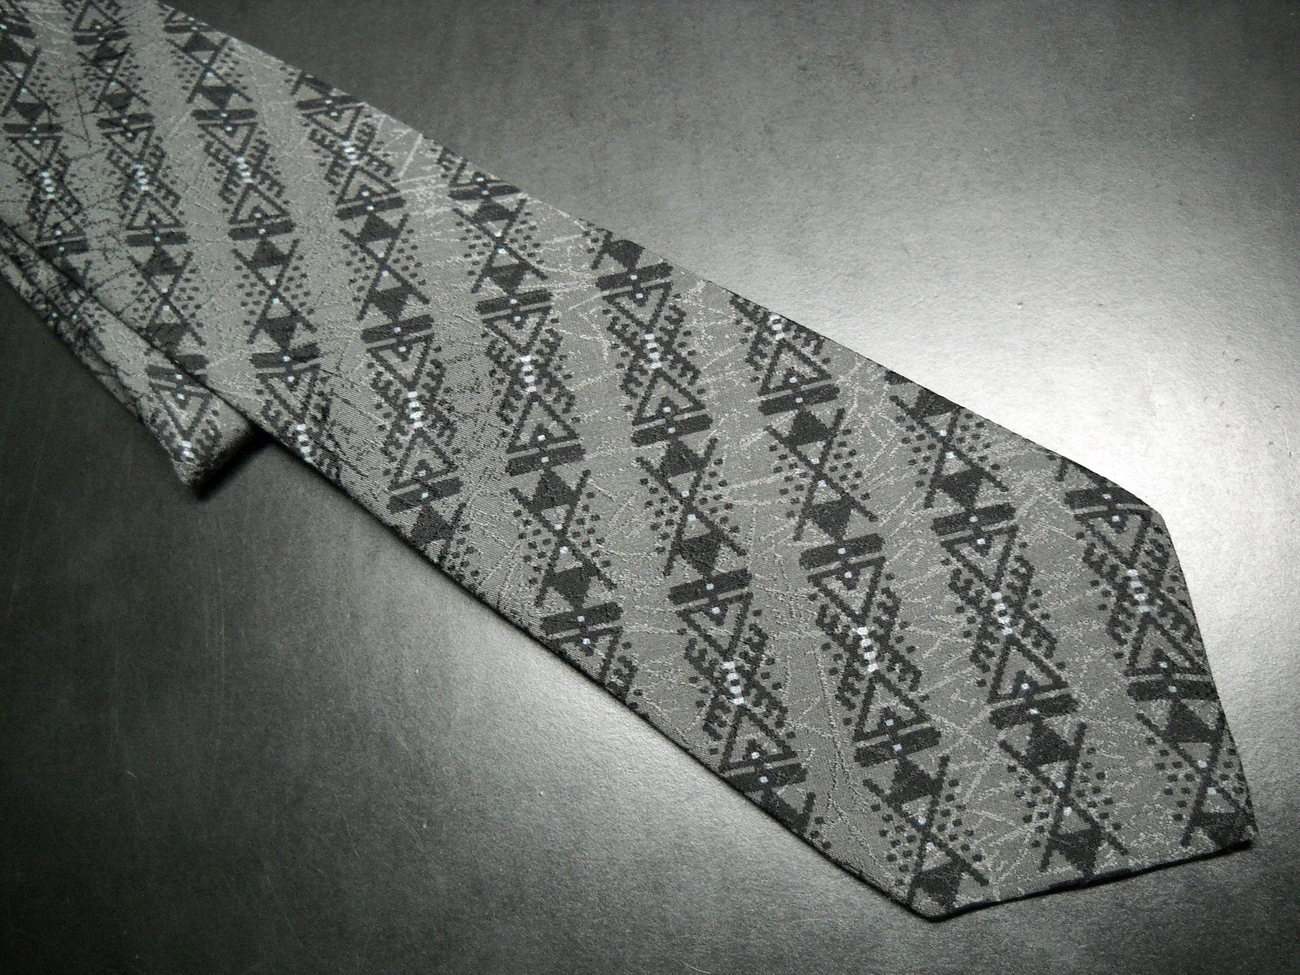 Gianni Versace Neck Tie Stripes in Black and Greys Silk Hand Made in Spain